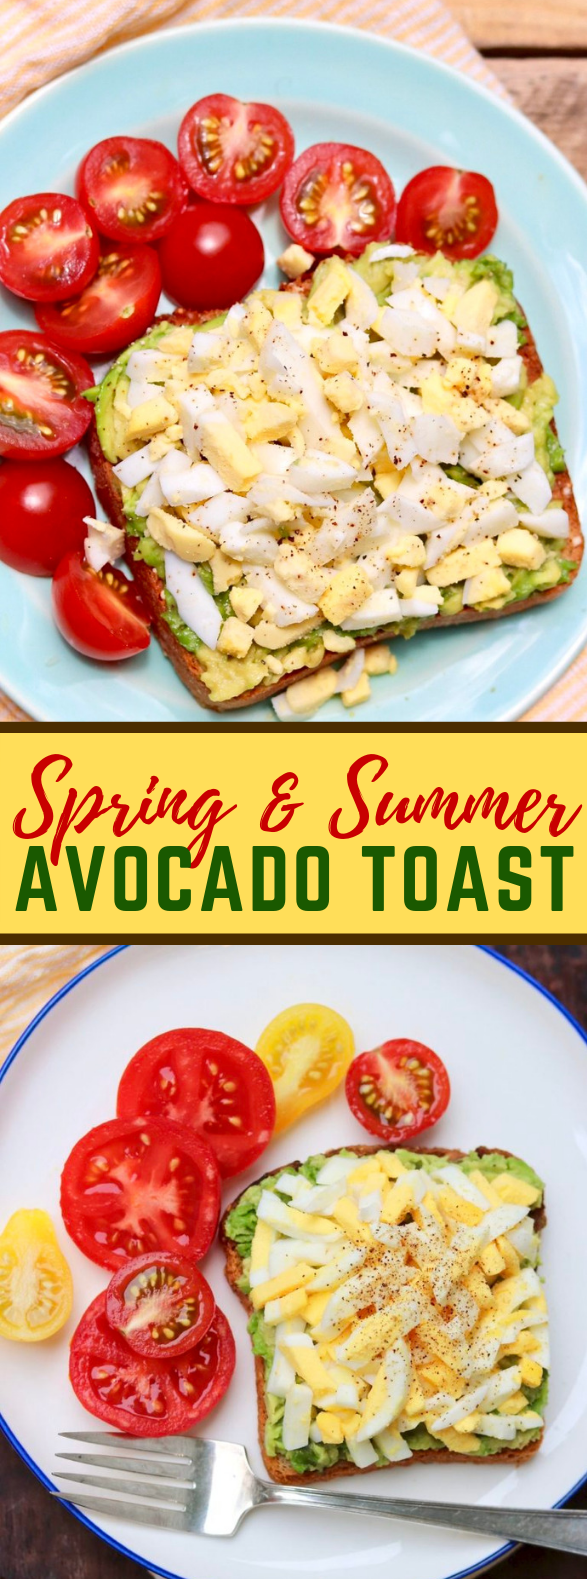 Spring & Summer Avocado Toast #healthy #easy